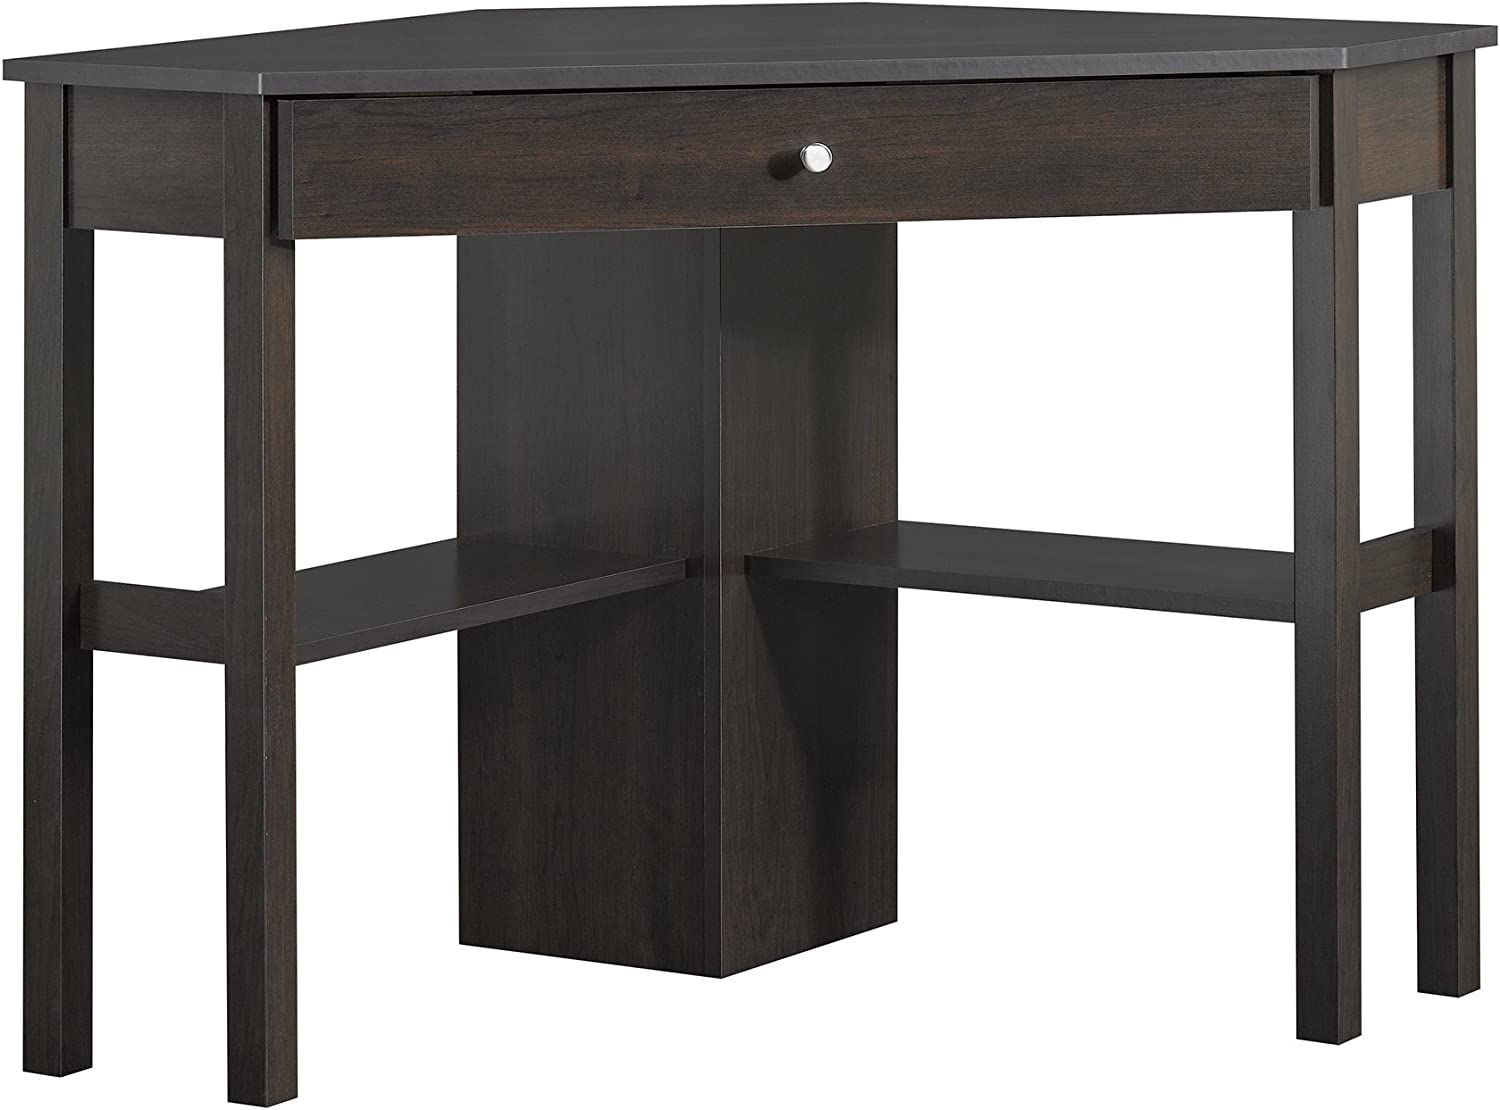 Sauder Beginnings Corner Computer Desk, L 45.95 x W 23.39 x H 29.92 , Cinnamon Cherry finish